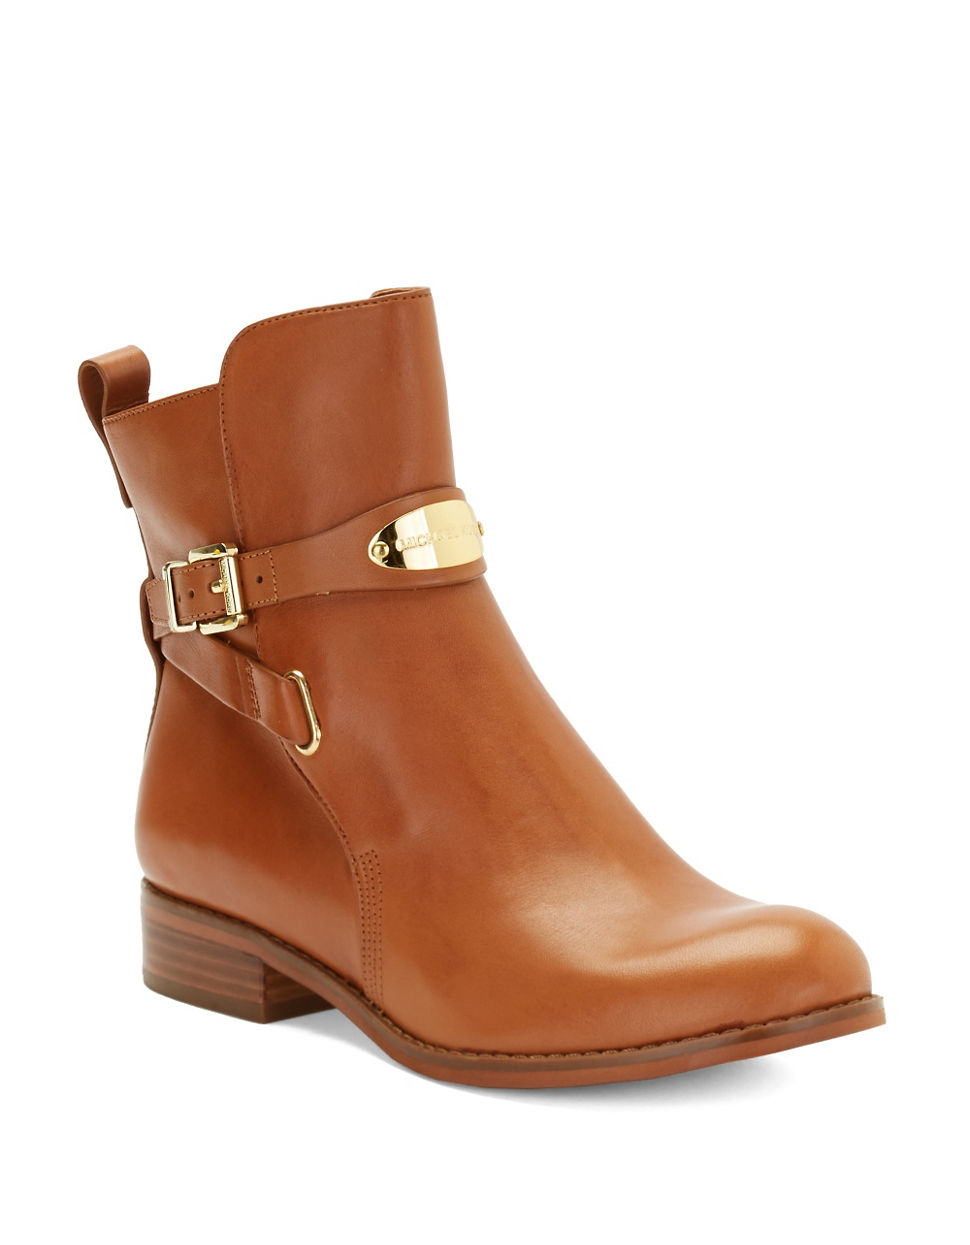 d45d3202637 Lyst - Michael Michael Kors Arley Ankle Boot in Brown